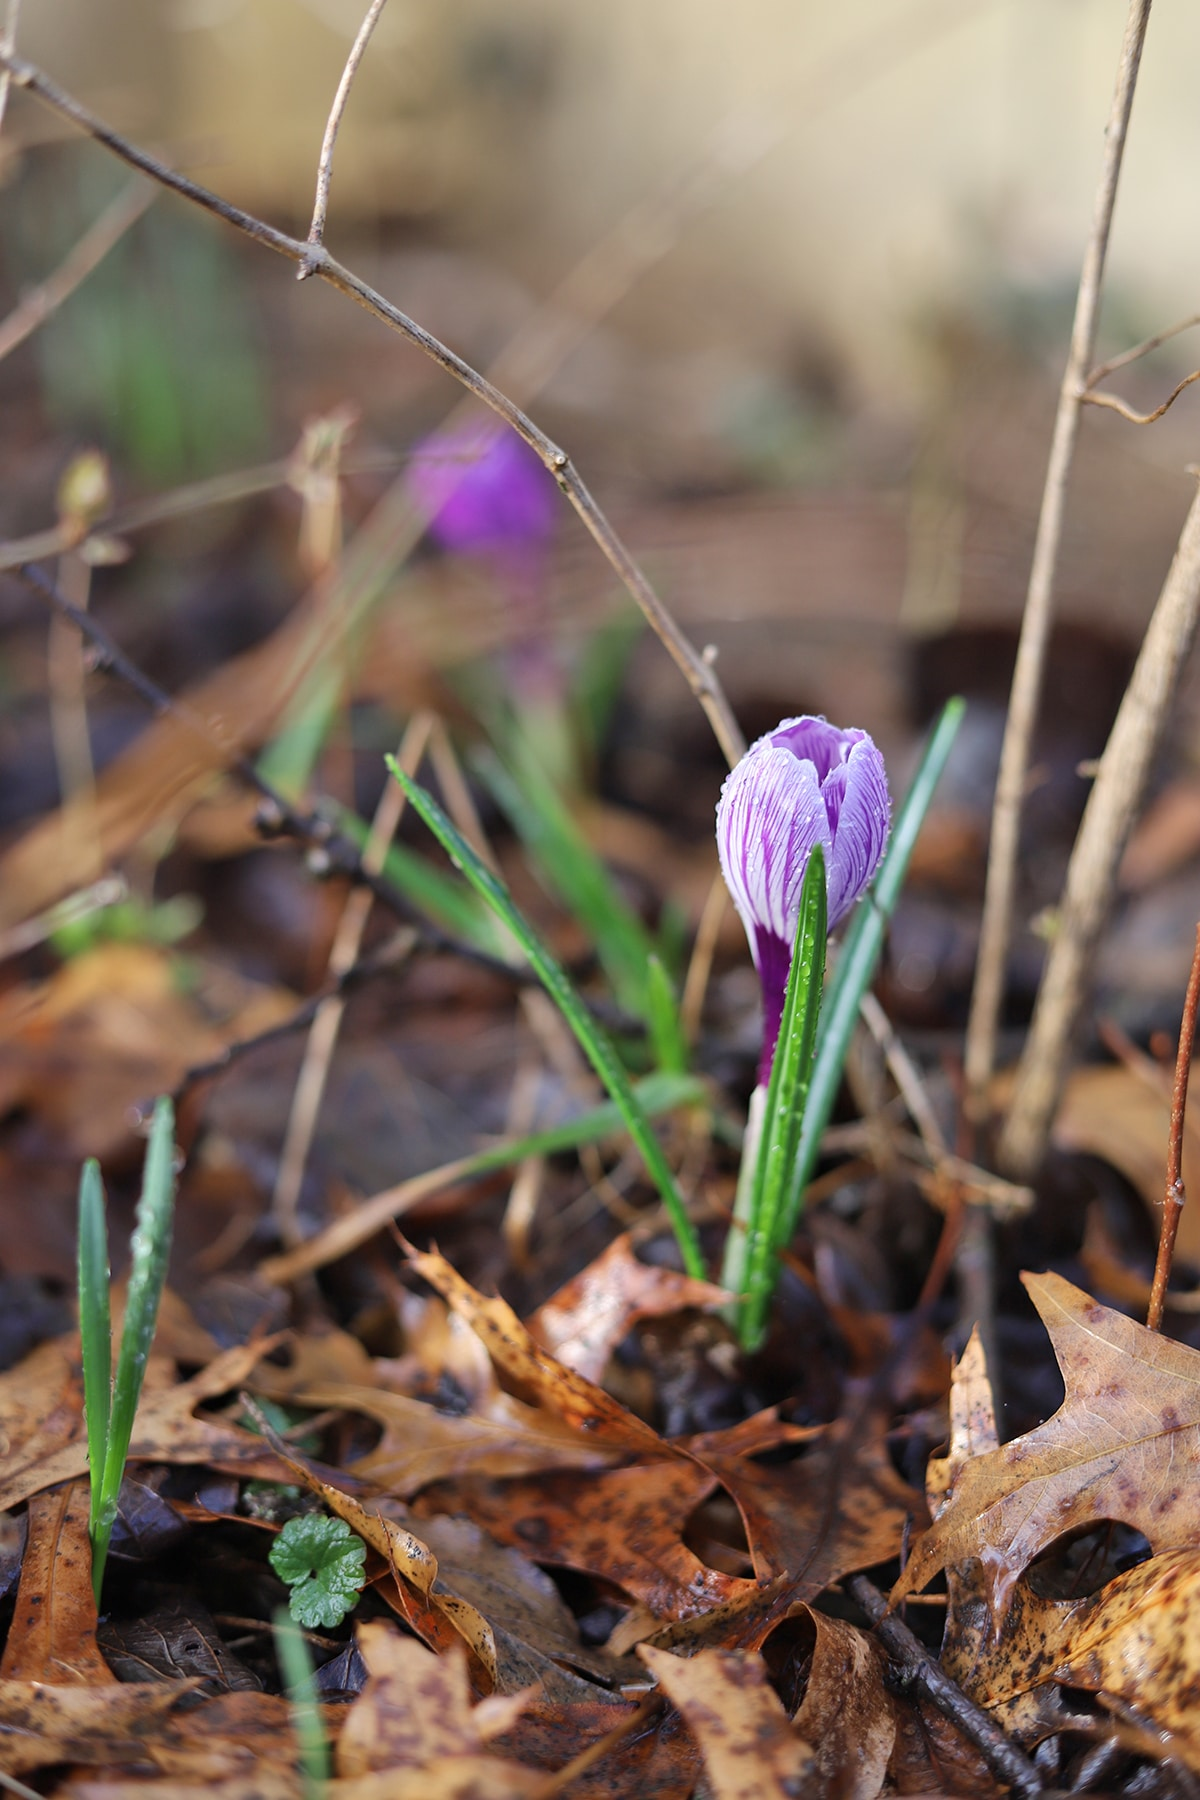 Crocus budding in the yard.